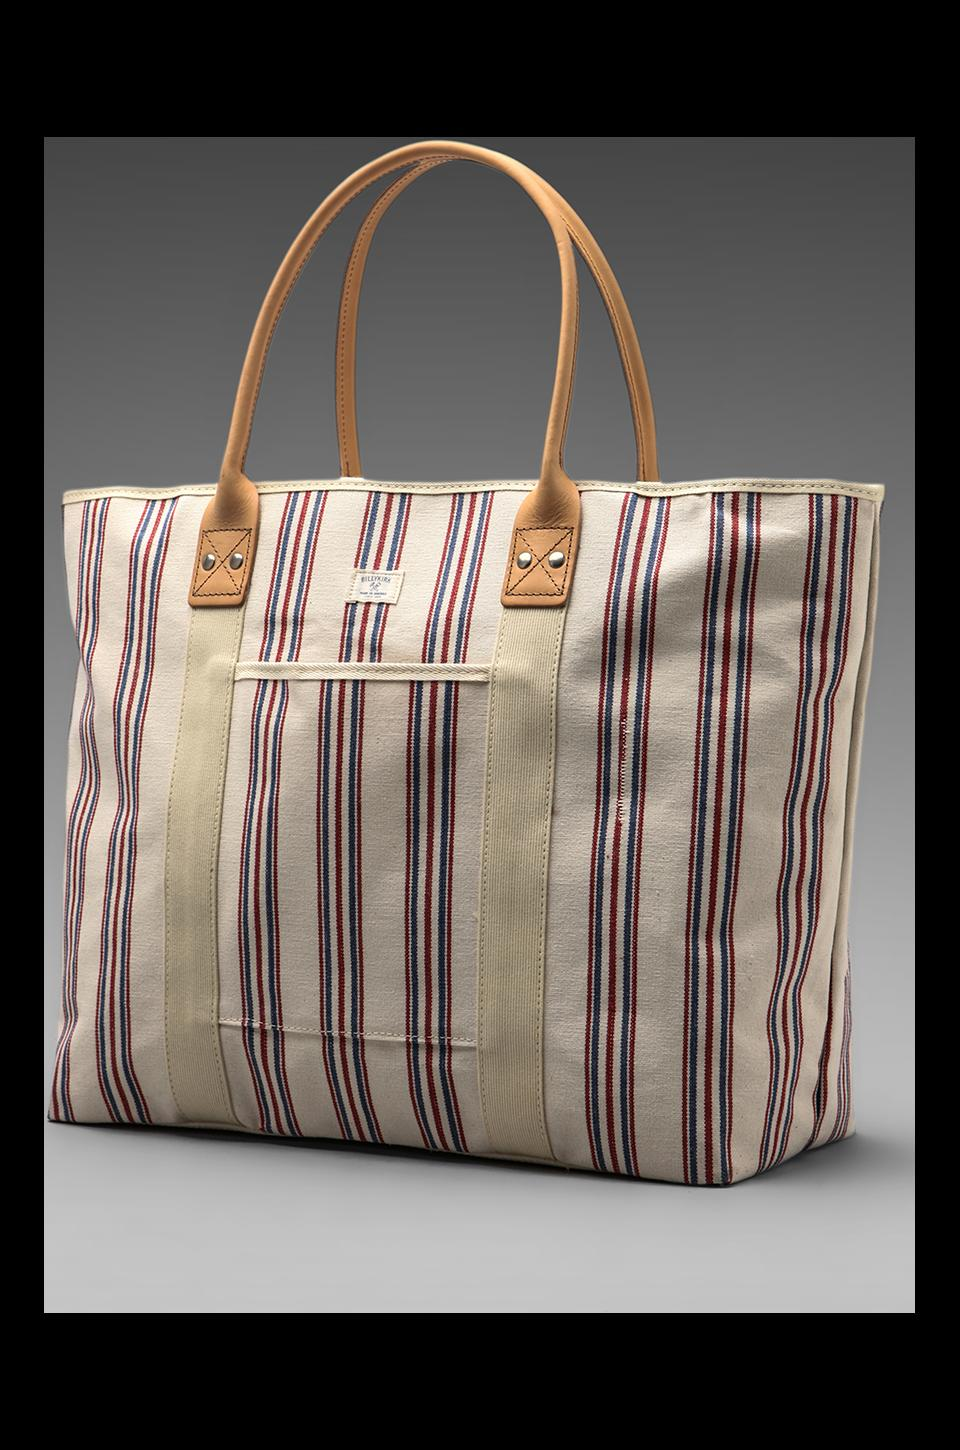 Billykirk No. 296 Big Tote in Red White Blue with Russet